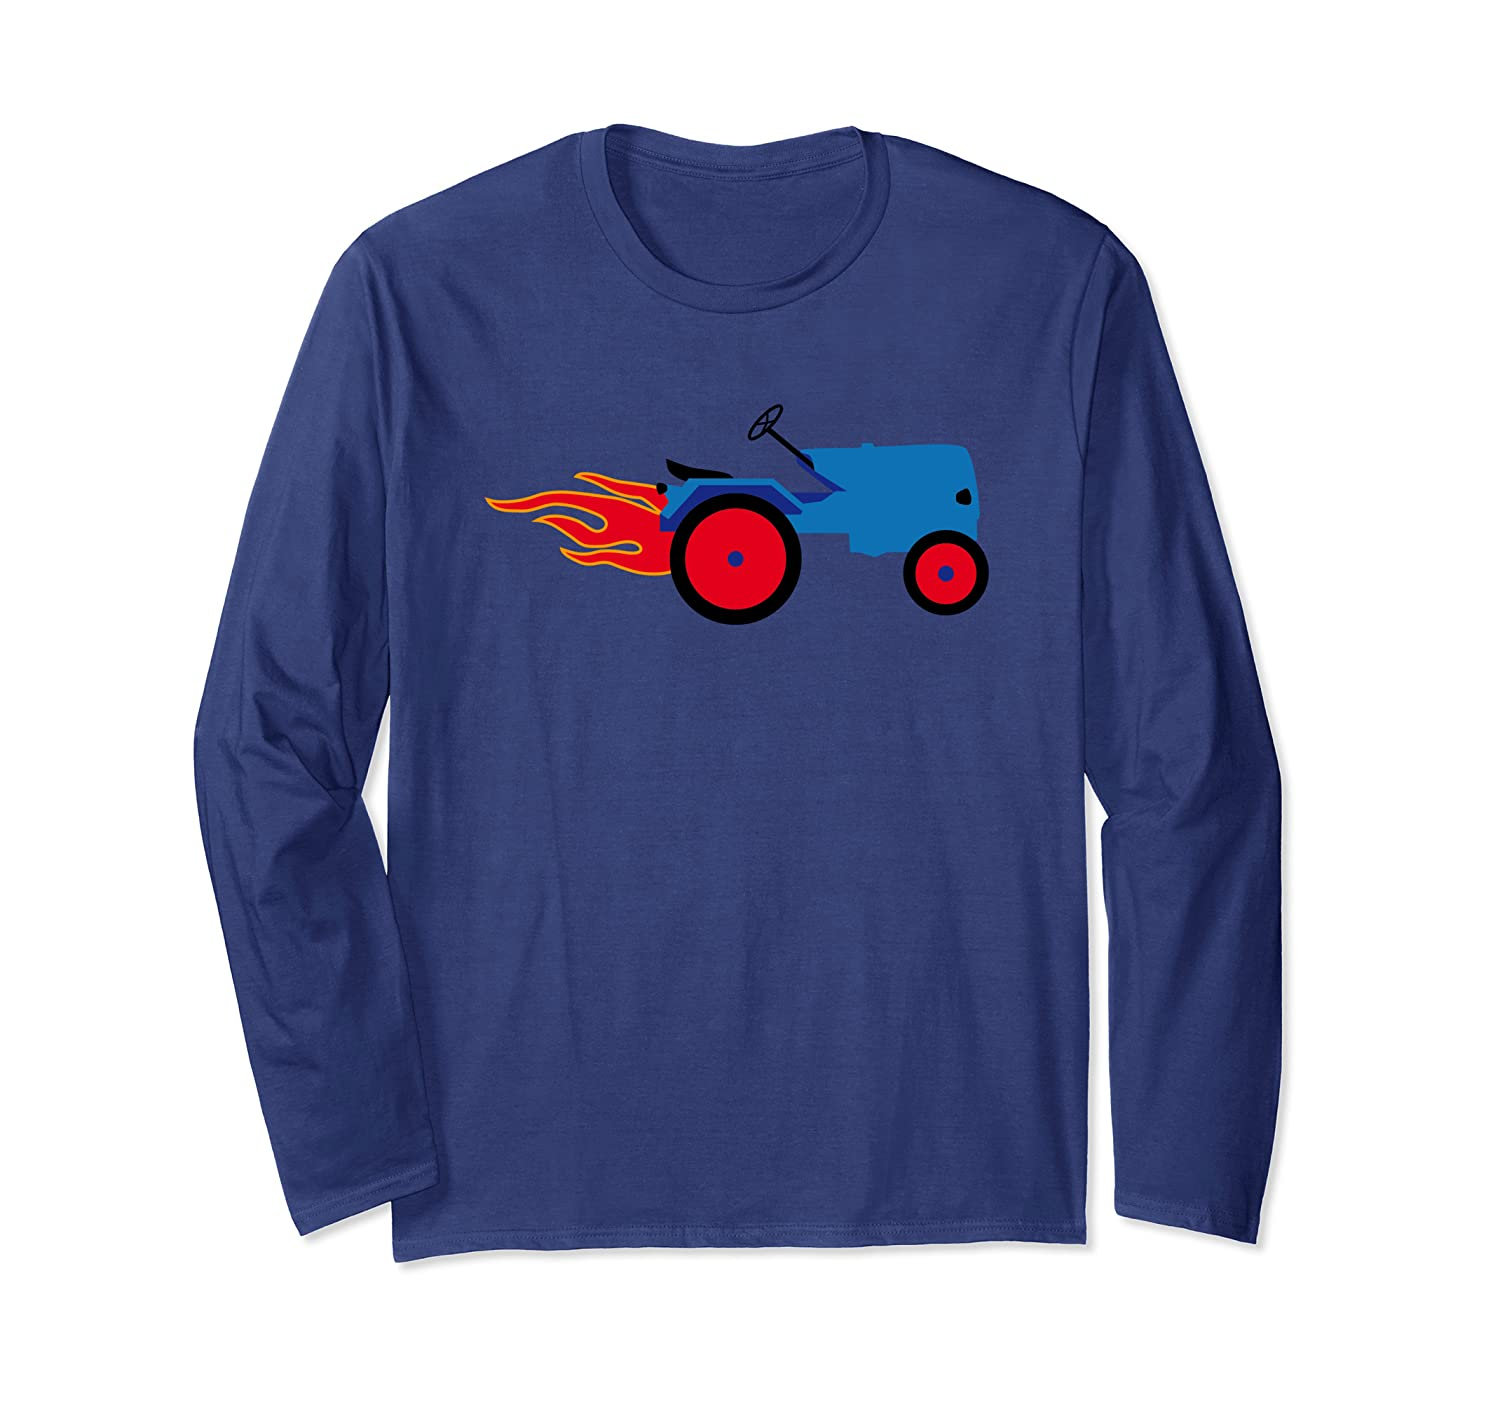 Blue Tractor Flame Fire Tee Gift  Farm Farmer Tractors Long Sleeve T-Shirt